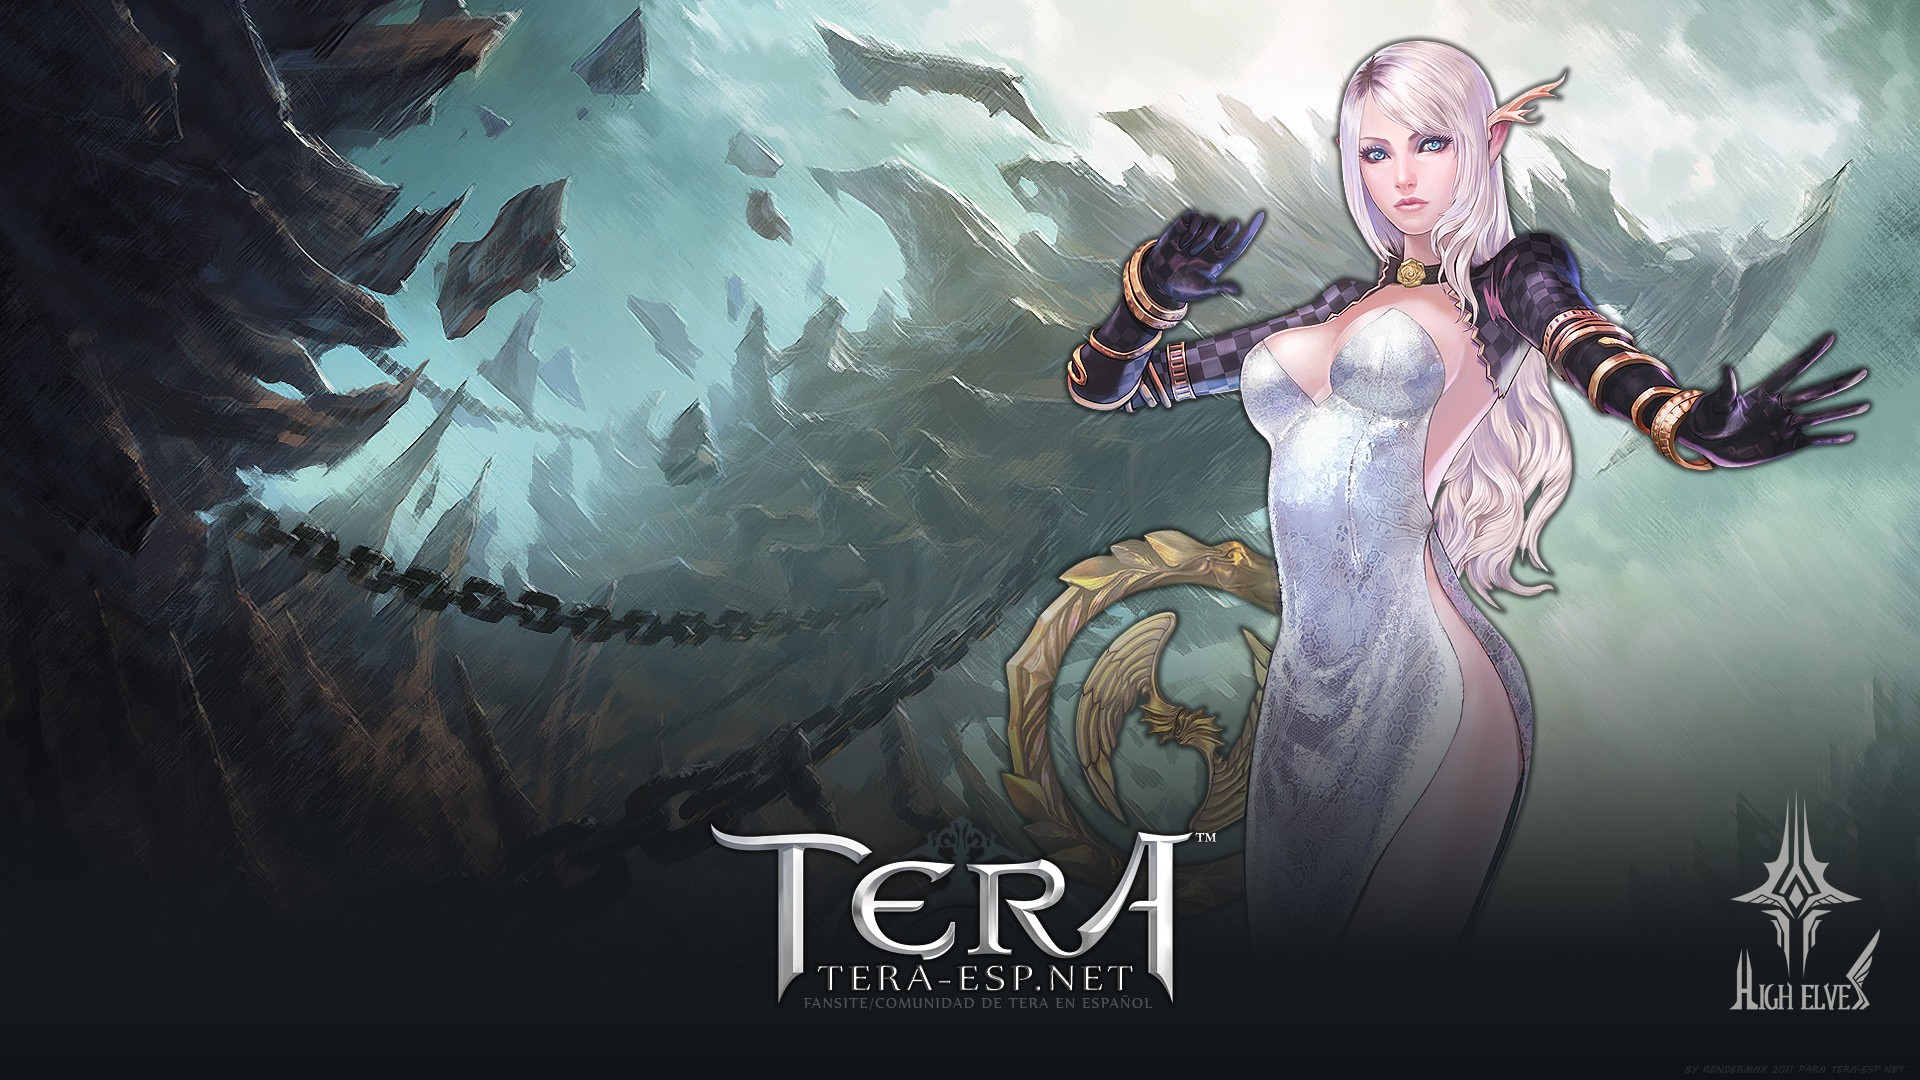 Tera Full Hd Wallpaper And Background Image  1920X1080  Id115484-2545